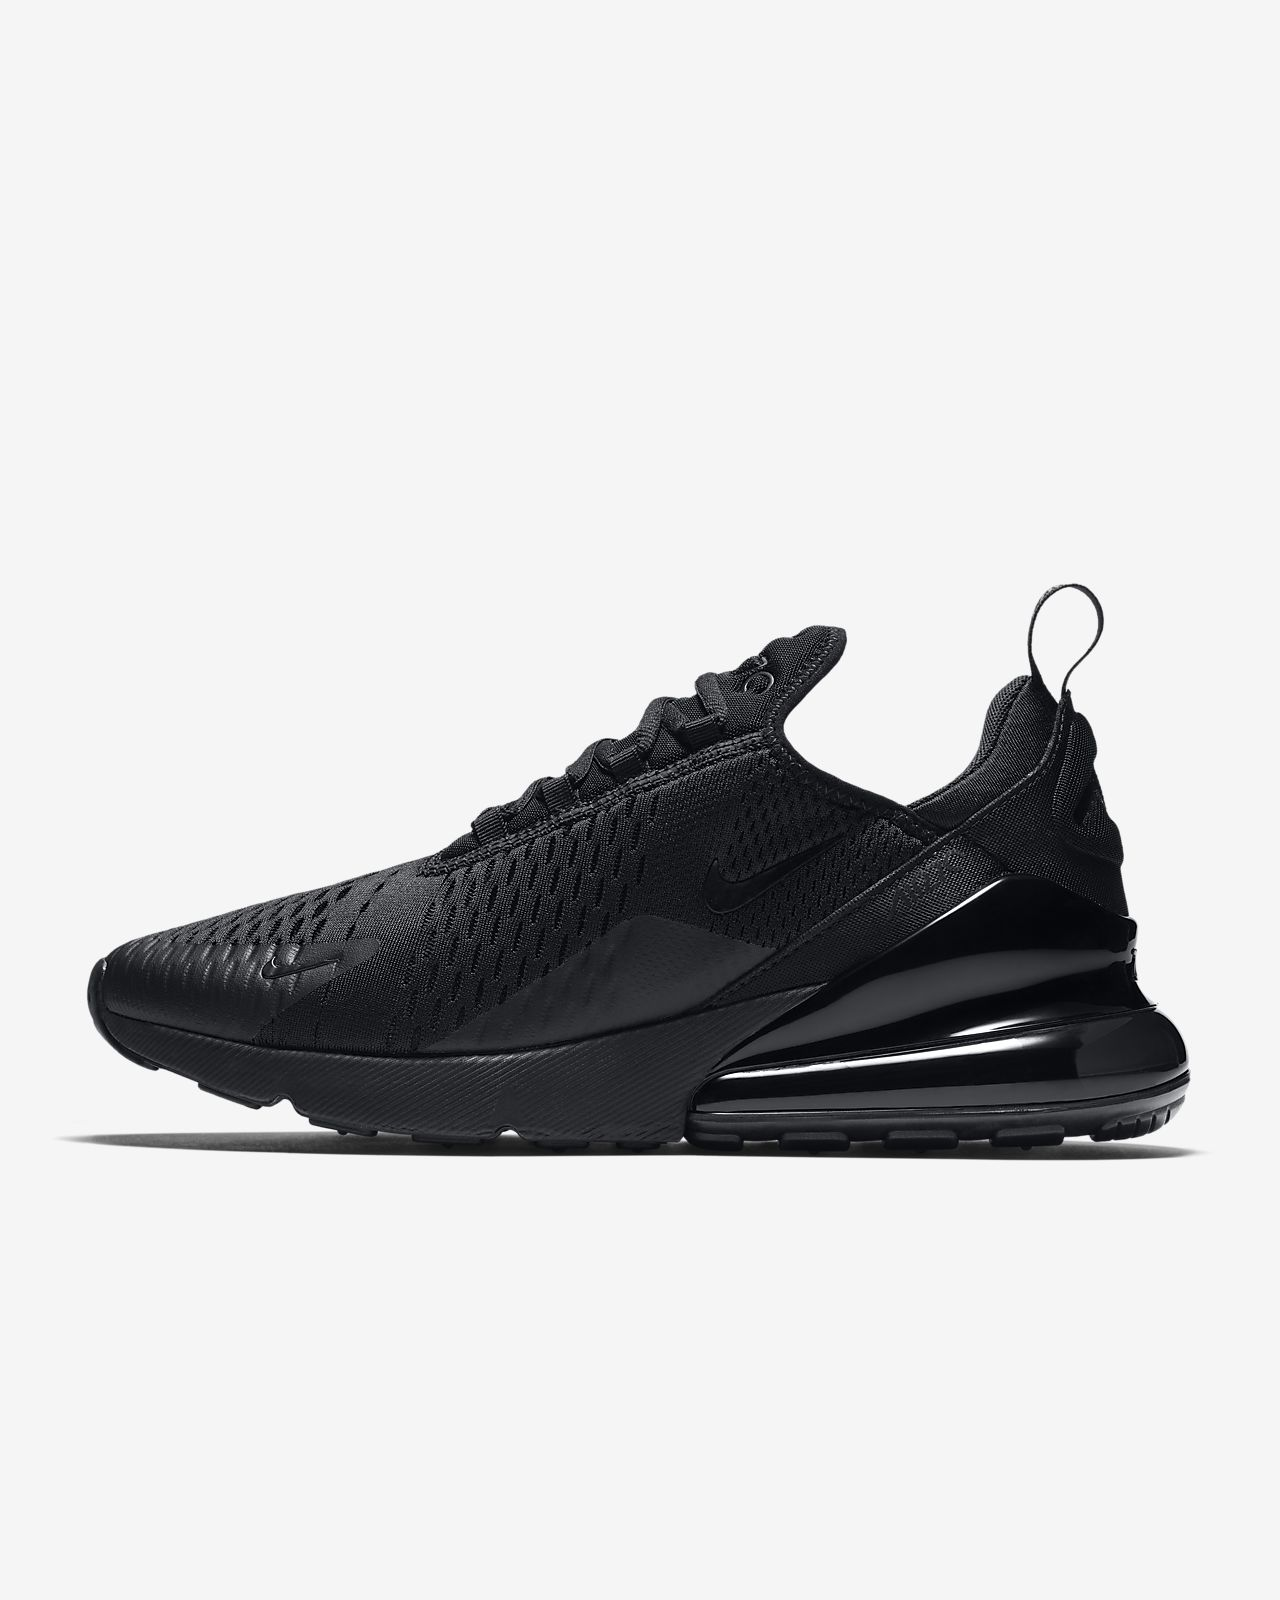 various colors 1e4c0 0a5cb Nike Air Max 270 Men's Shoe. Nike.com AU